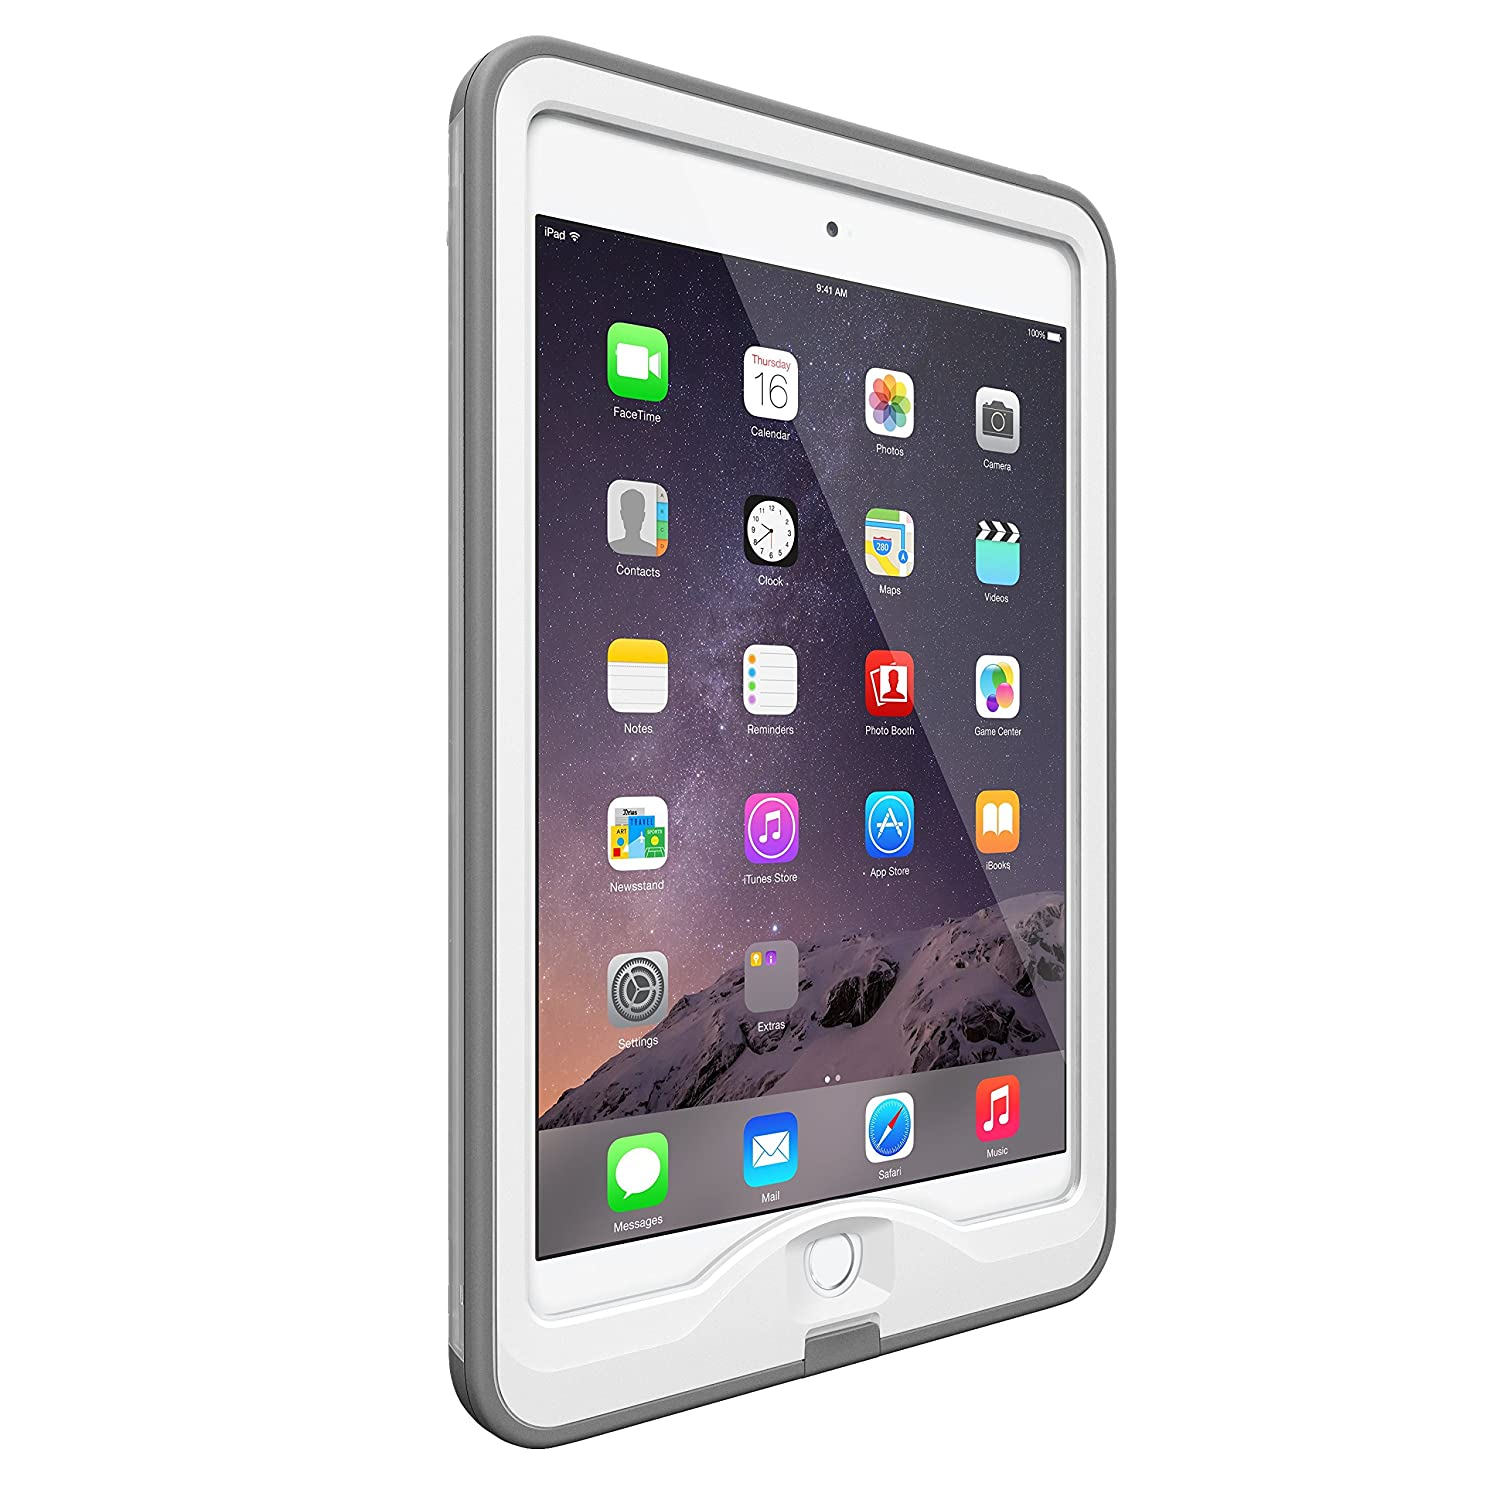 quality design c02ad 9ef92 Amazon.com: LifeProof NÜÜD iPad Mini/Mini 2/Mini 3 Waterproof Case ...